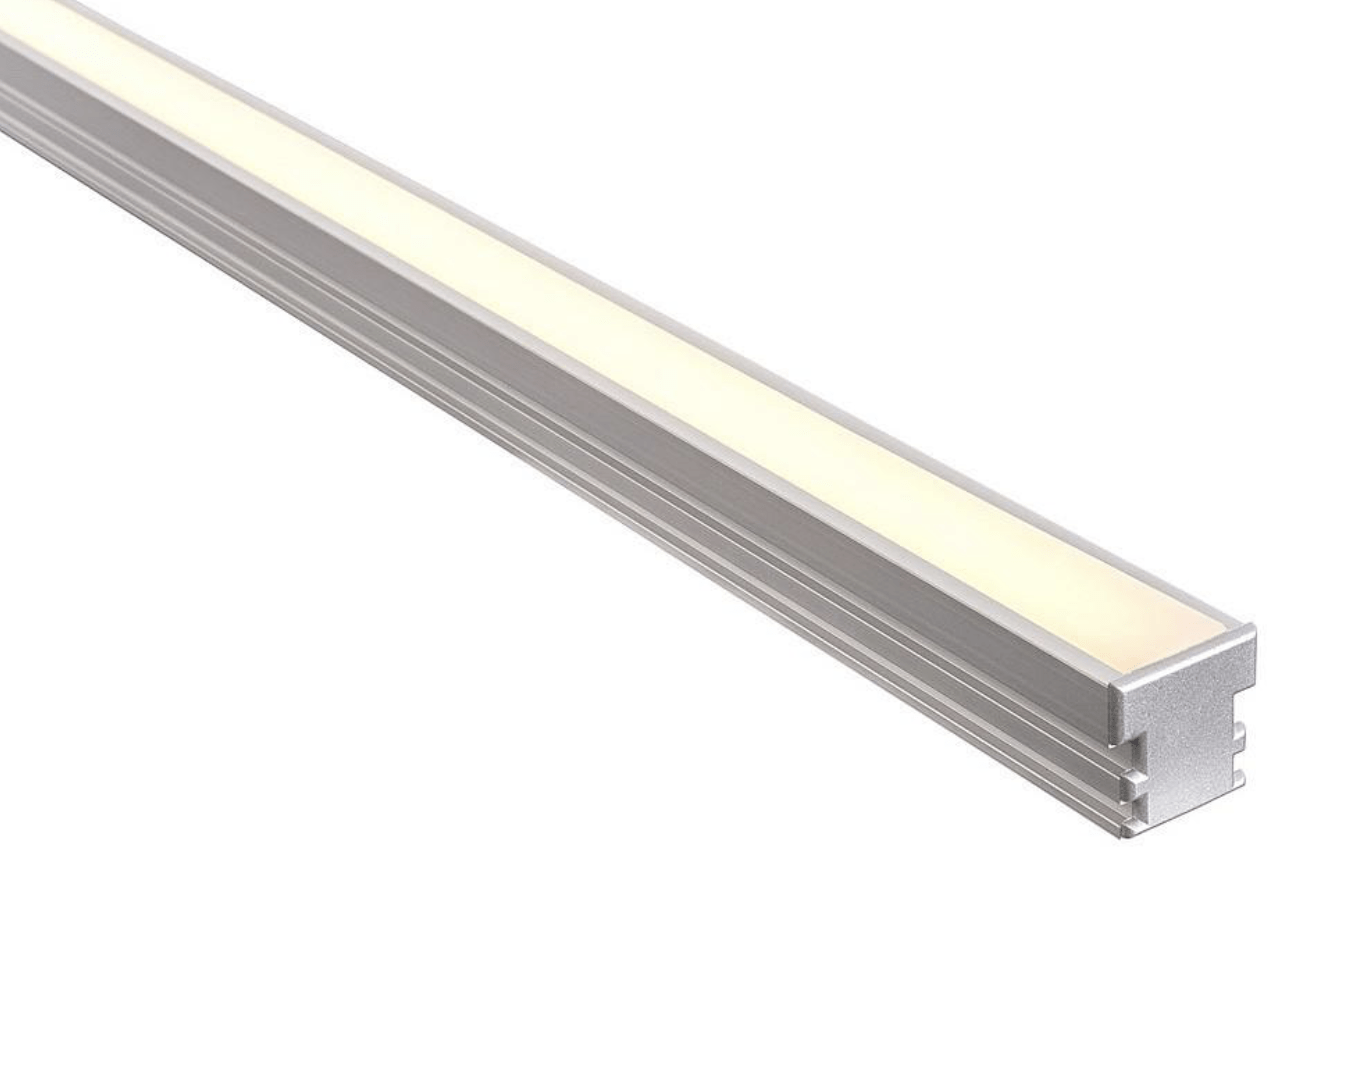 Profiles Recessed Profile - Foot Trafficable Deep - HV9698-2626 lighting shops lighting stores LED lights  lighting designer